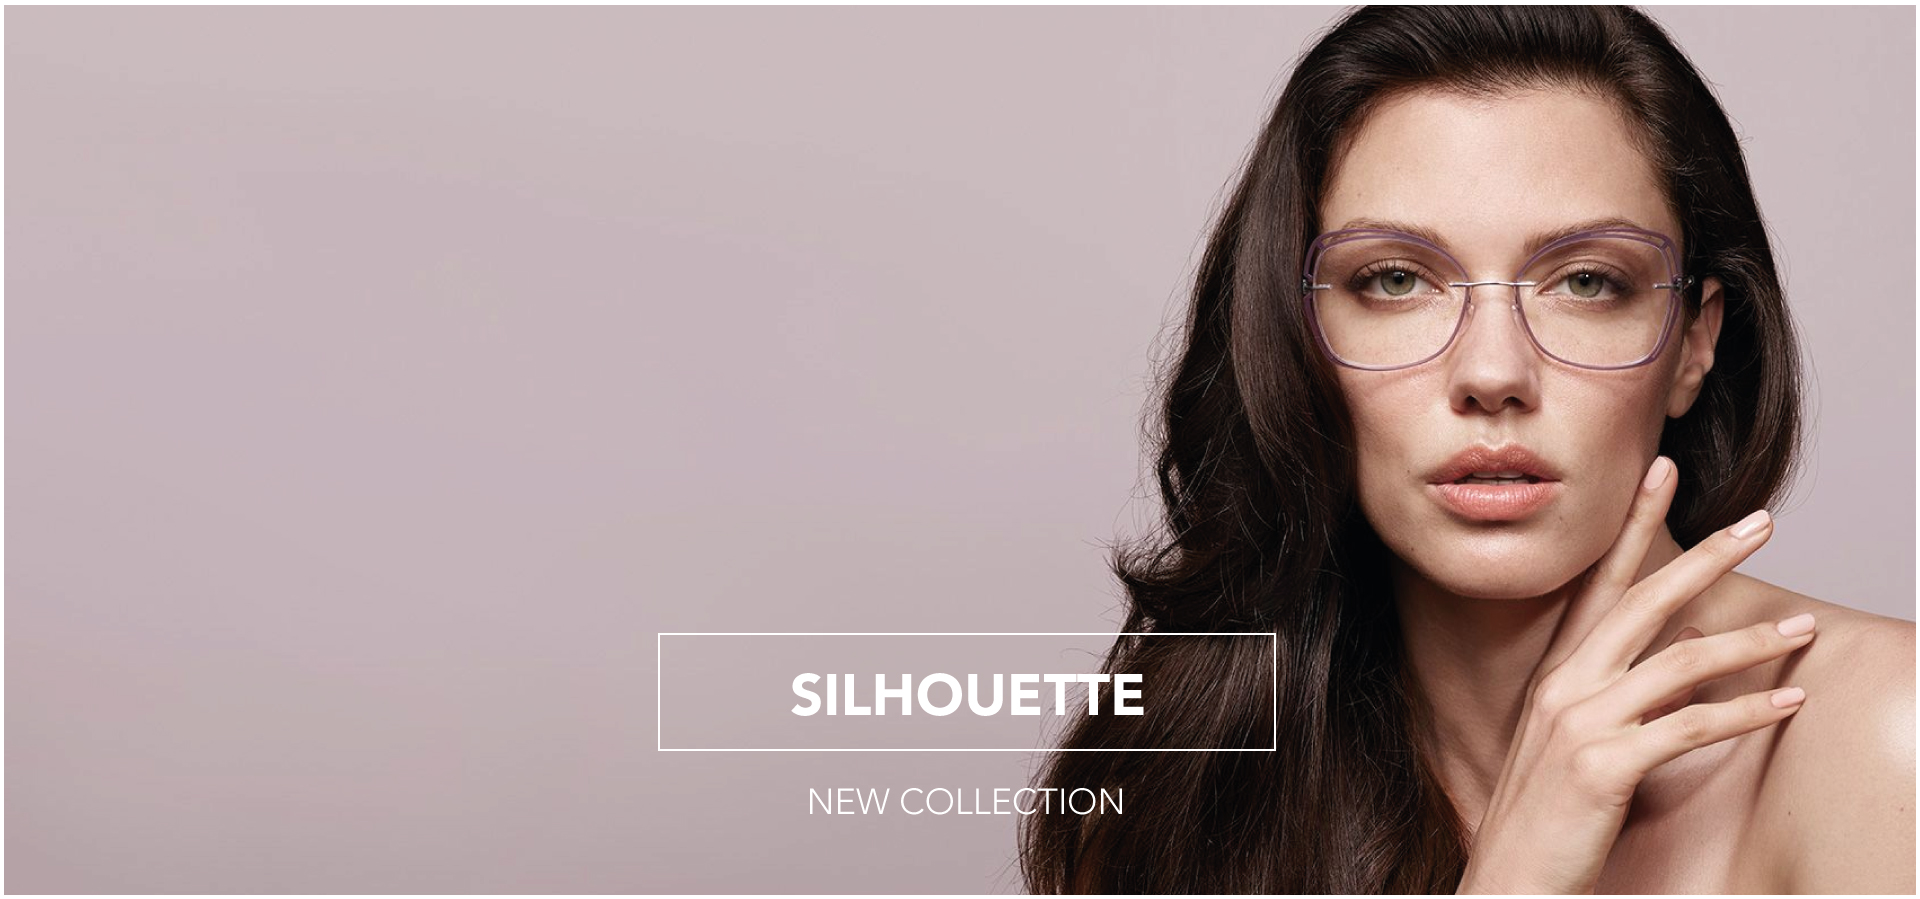 Silhouette| New Collection SS2020